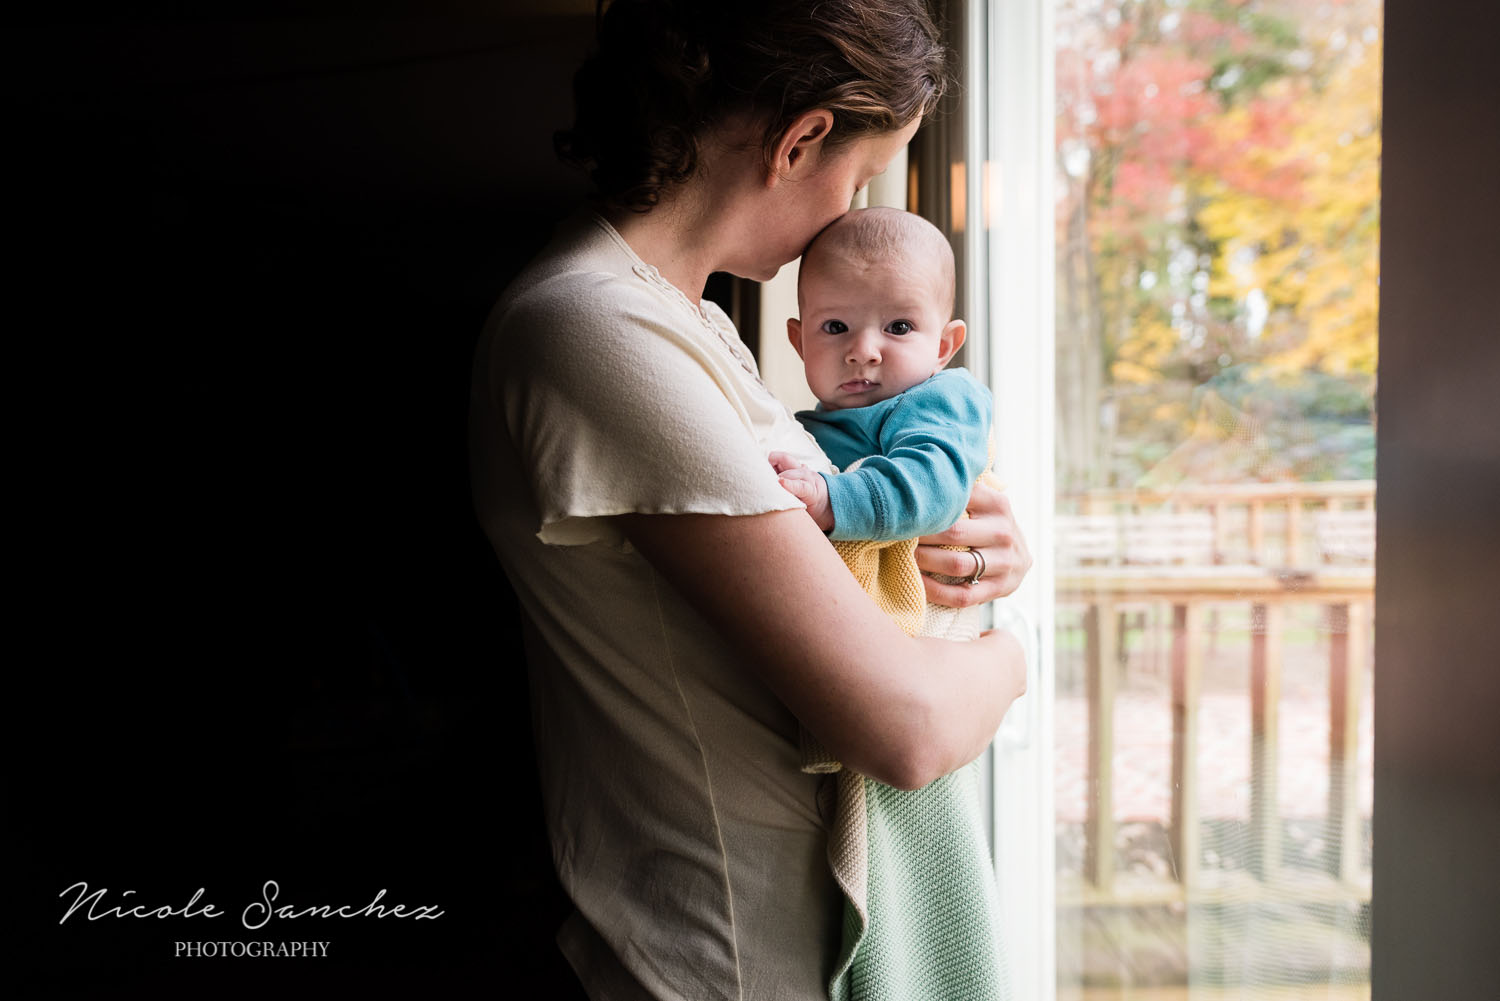 365-project-favorites-november-nicole-sanchez-northern-virginia-family-photographer-1.jpg